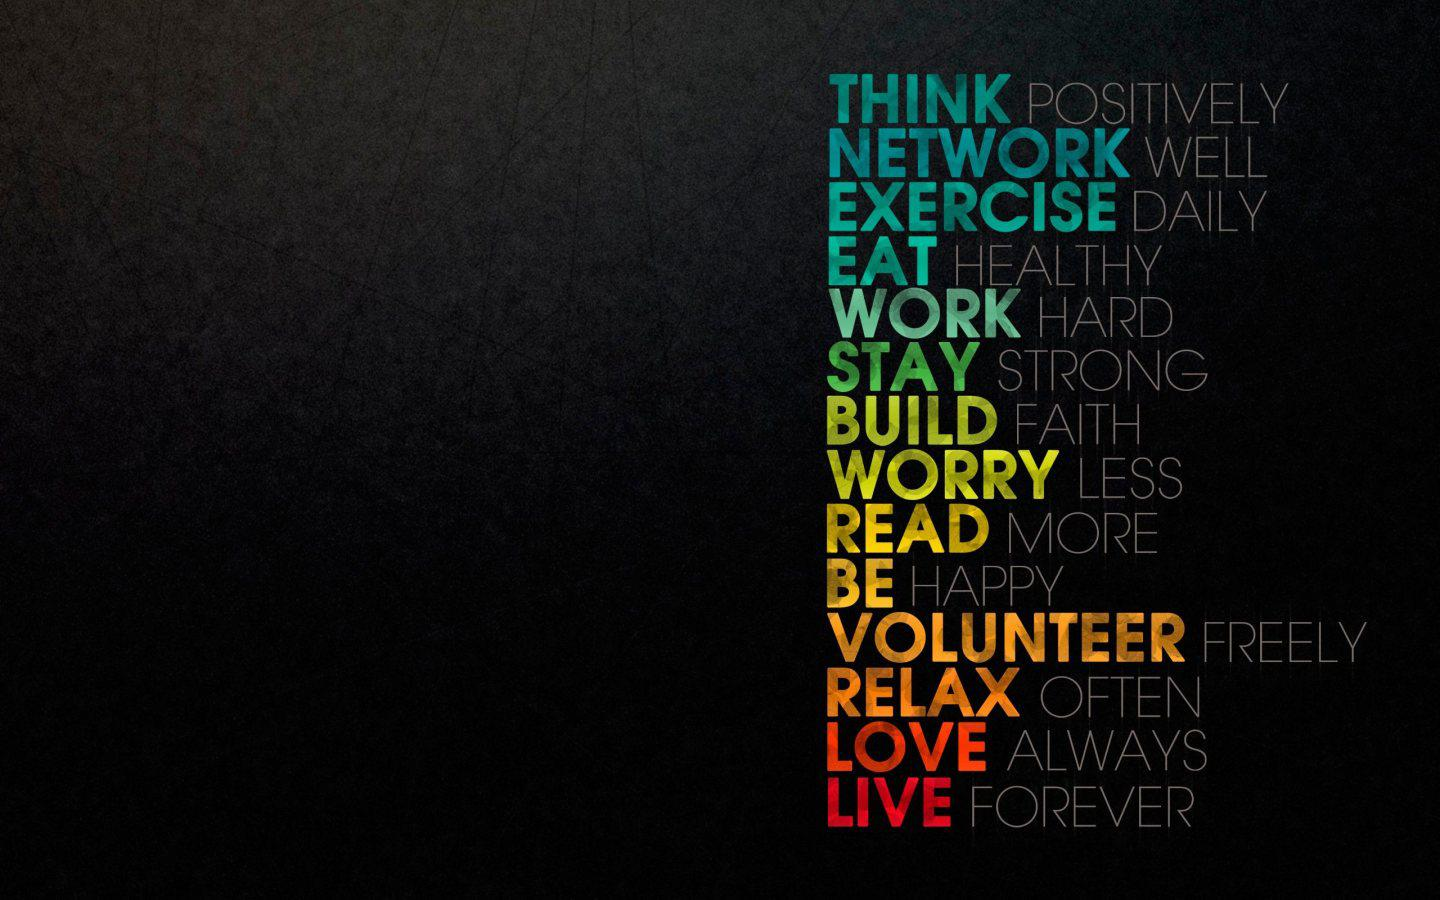 Hd wallpaper cool - Cool Wallpapers Quotes 1633 Wallpapers Free Coolz Hd Wallpaper